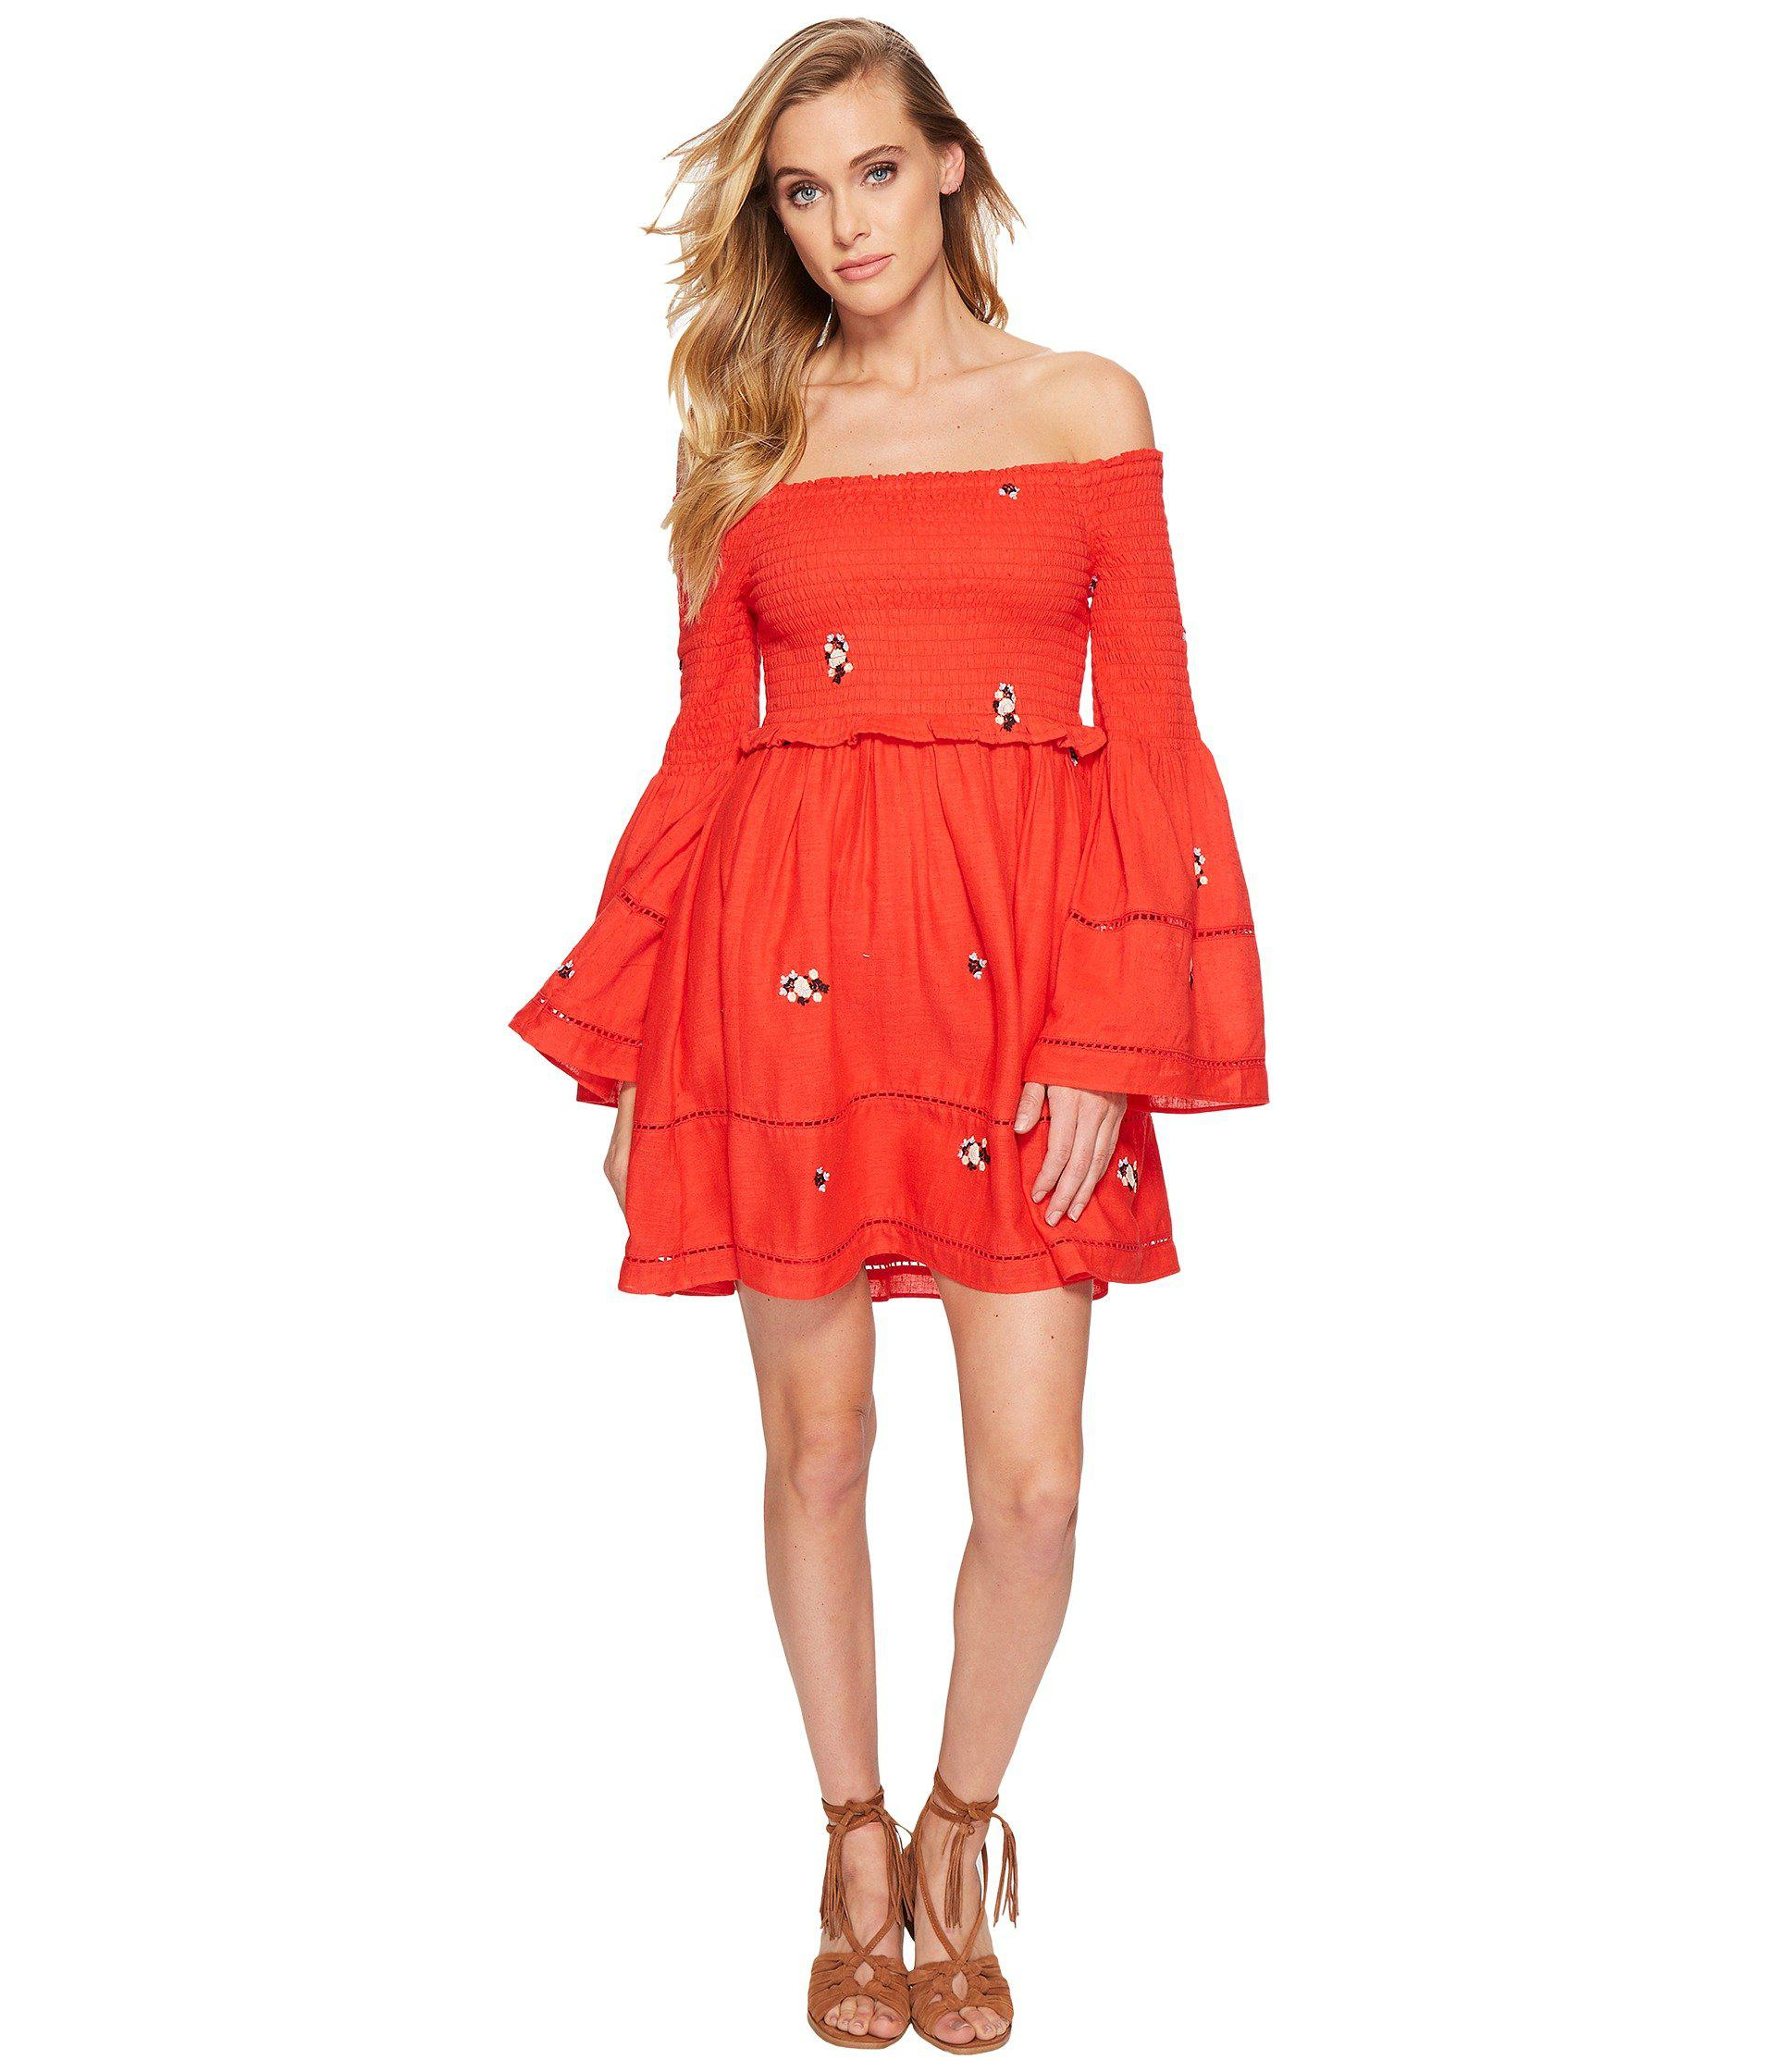 3cfcd26ac11af Lyst - Free People Counting Daisies Embroidered Mini Dress in Red ...